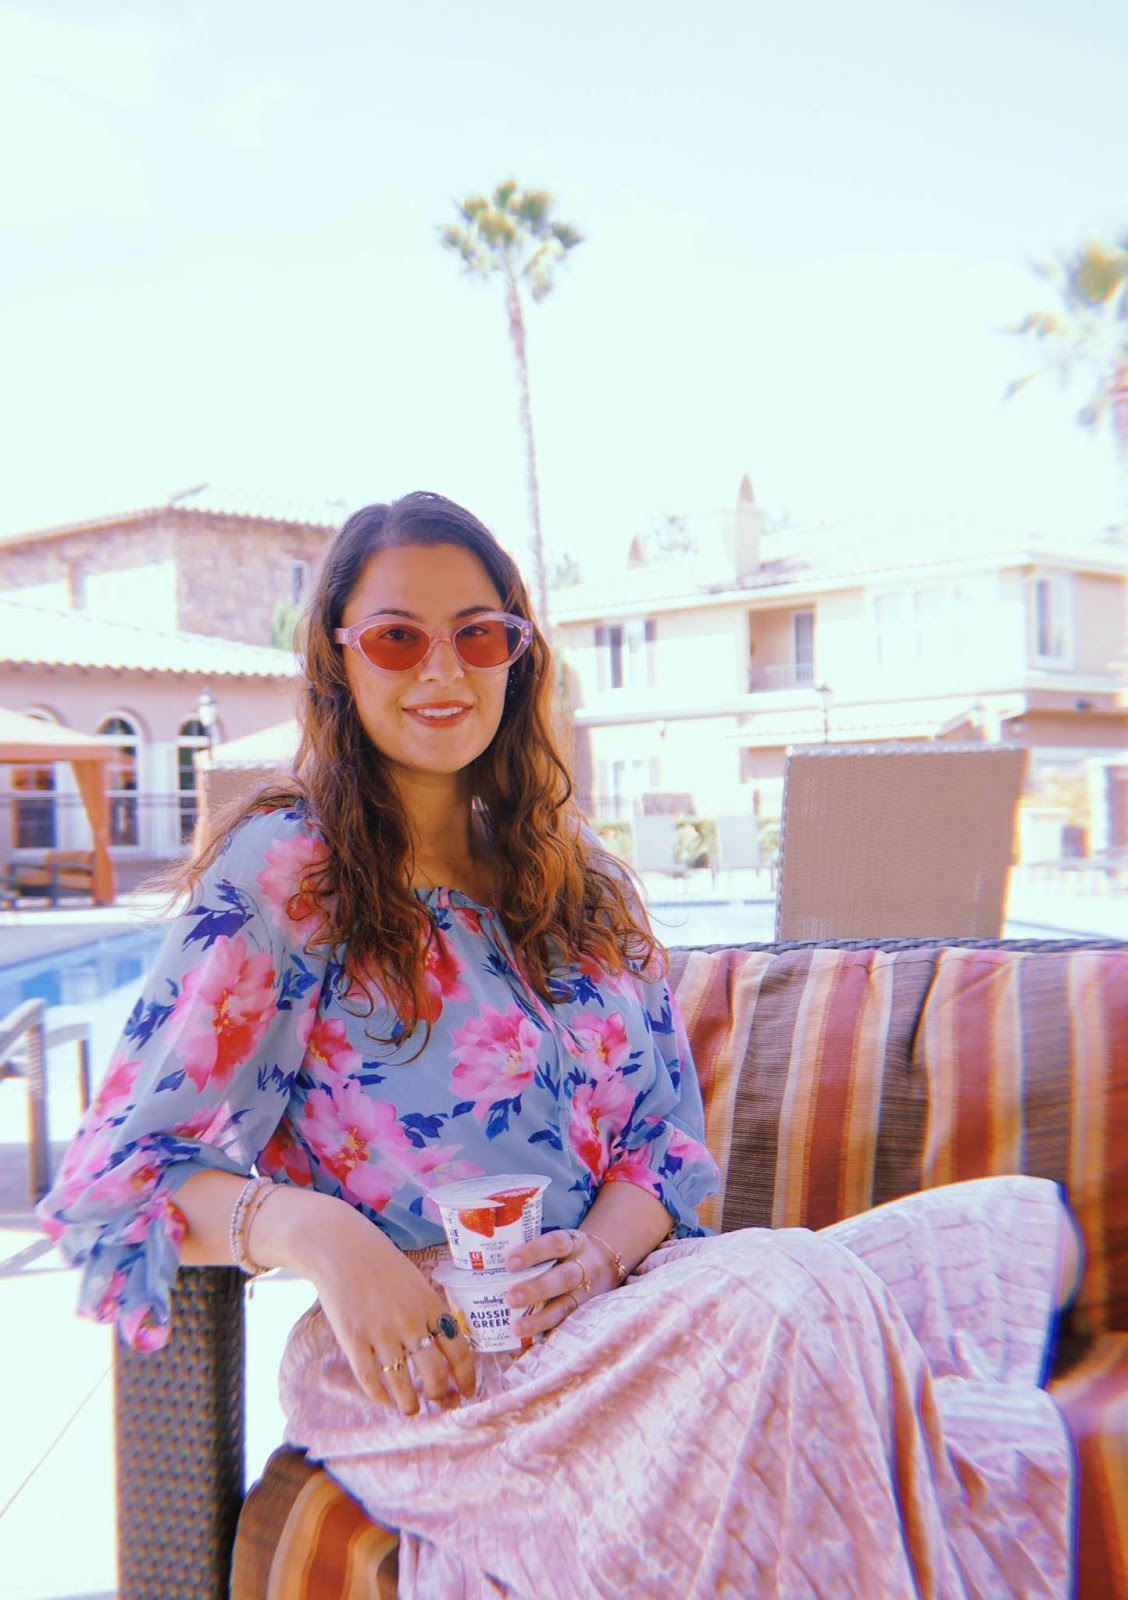 Downtown San Diego Travel influencer and California blogger shares her self-employment journey as a blogging coach, social media consultant. Instagram influencer campaign with Wallaby Yogurt